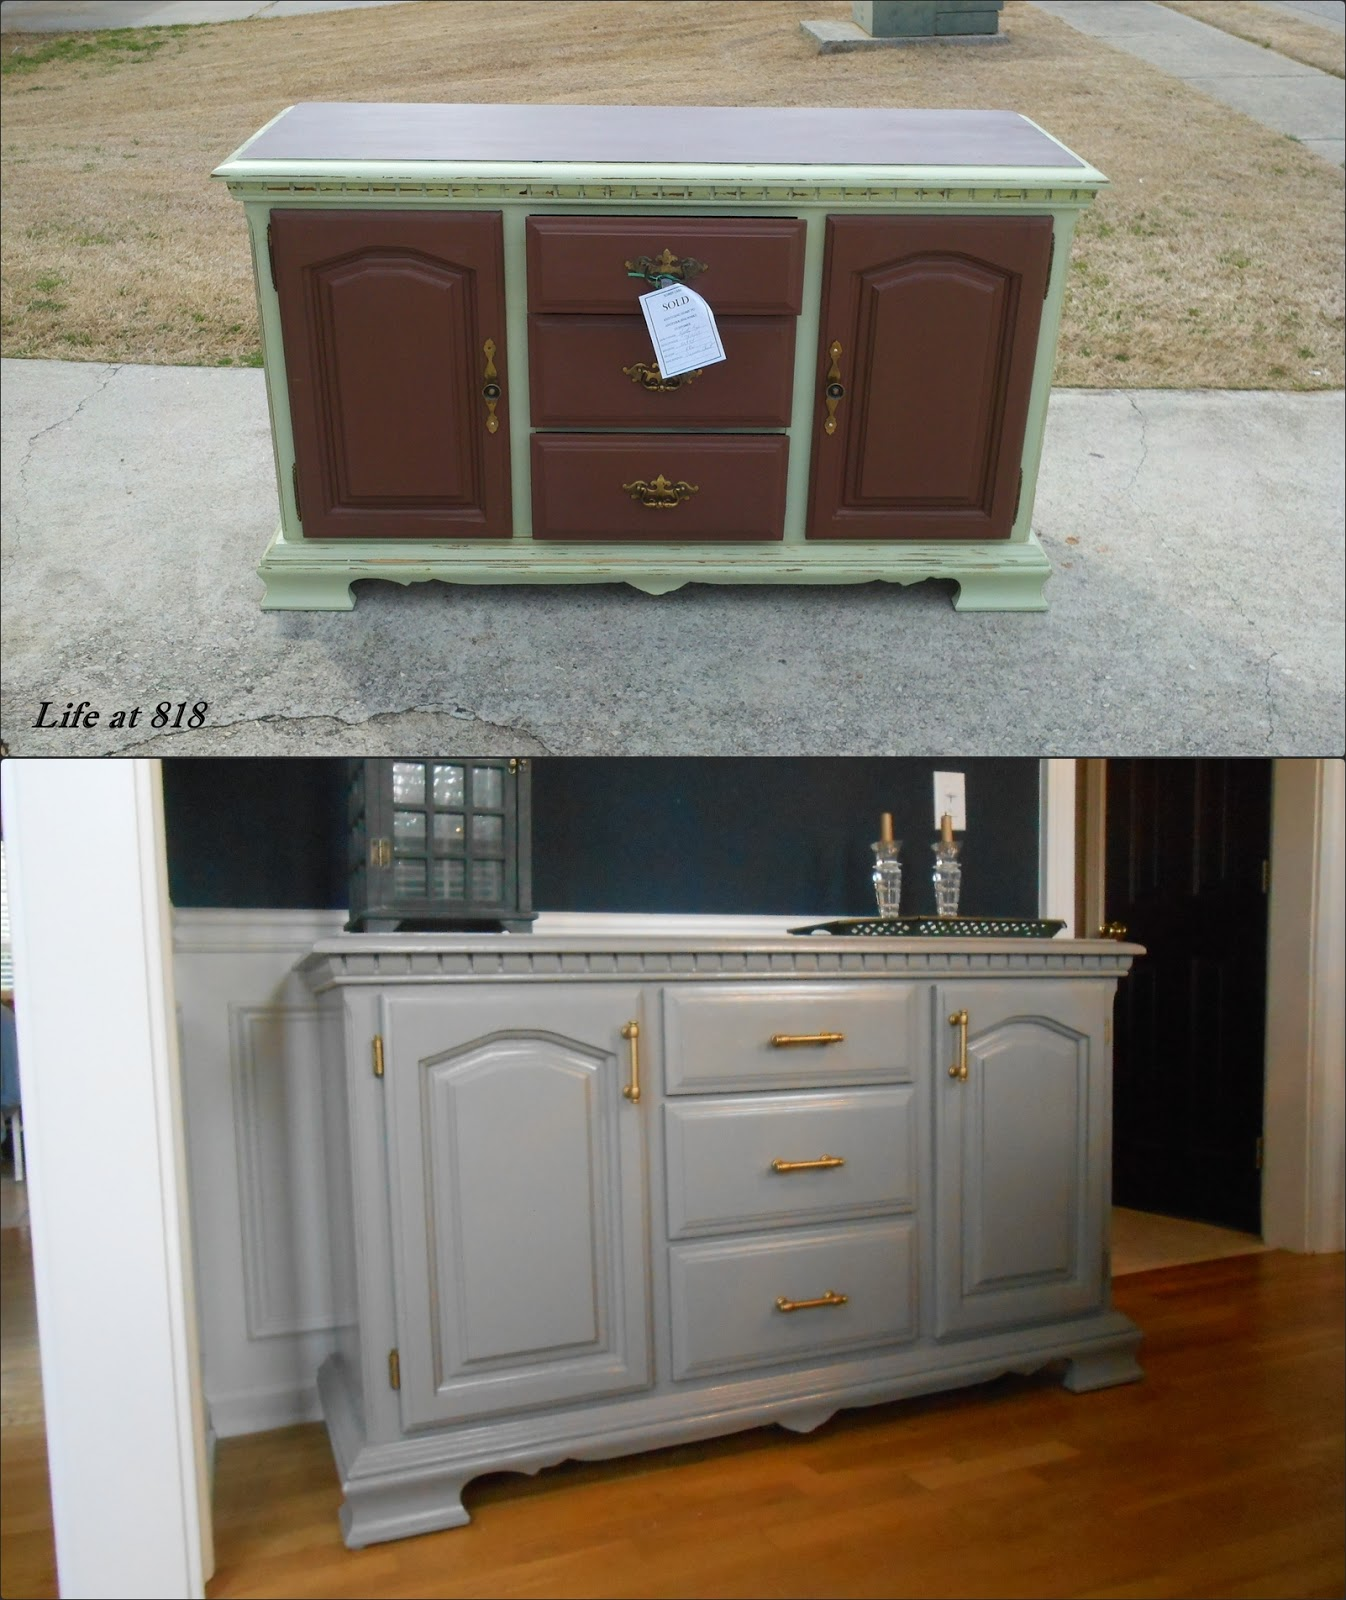 Dining Room Sideboards And Buffets: Life At 818: Refinishing A Dining Room Buffet